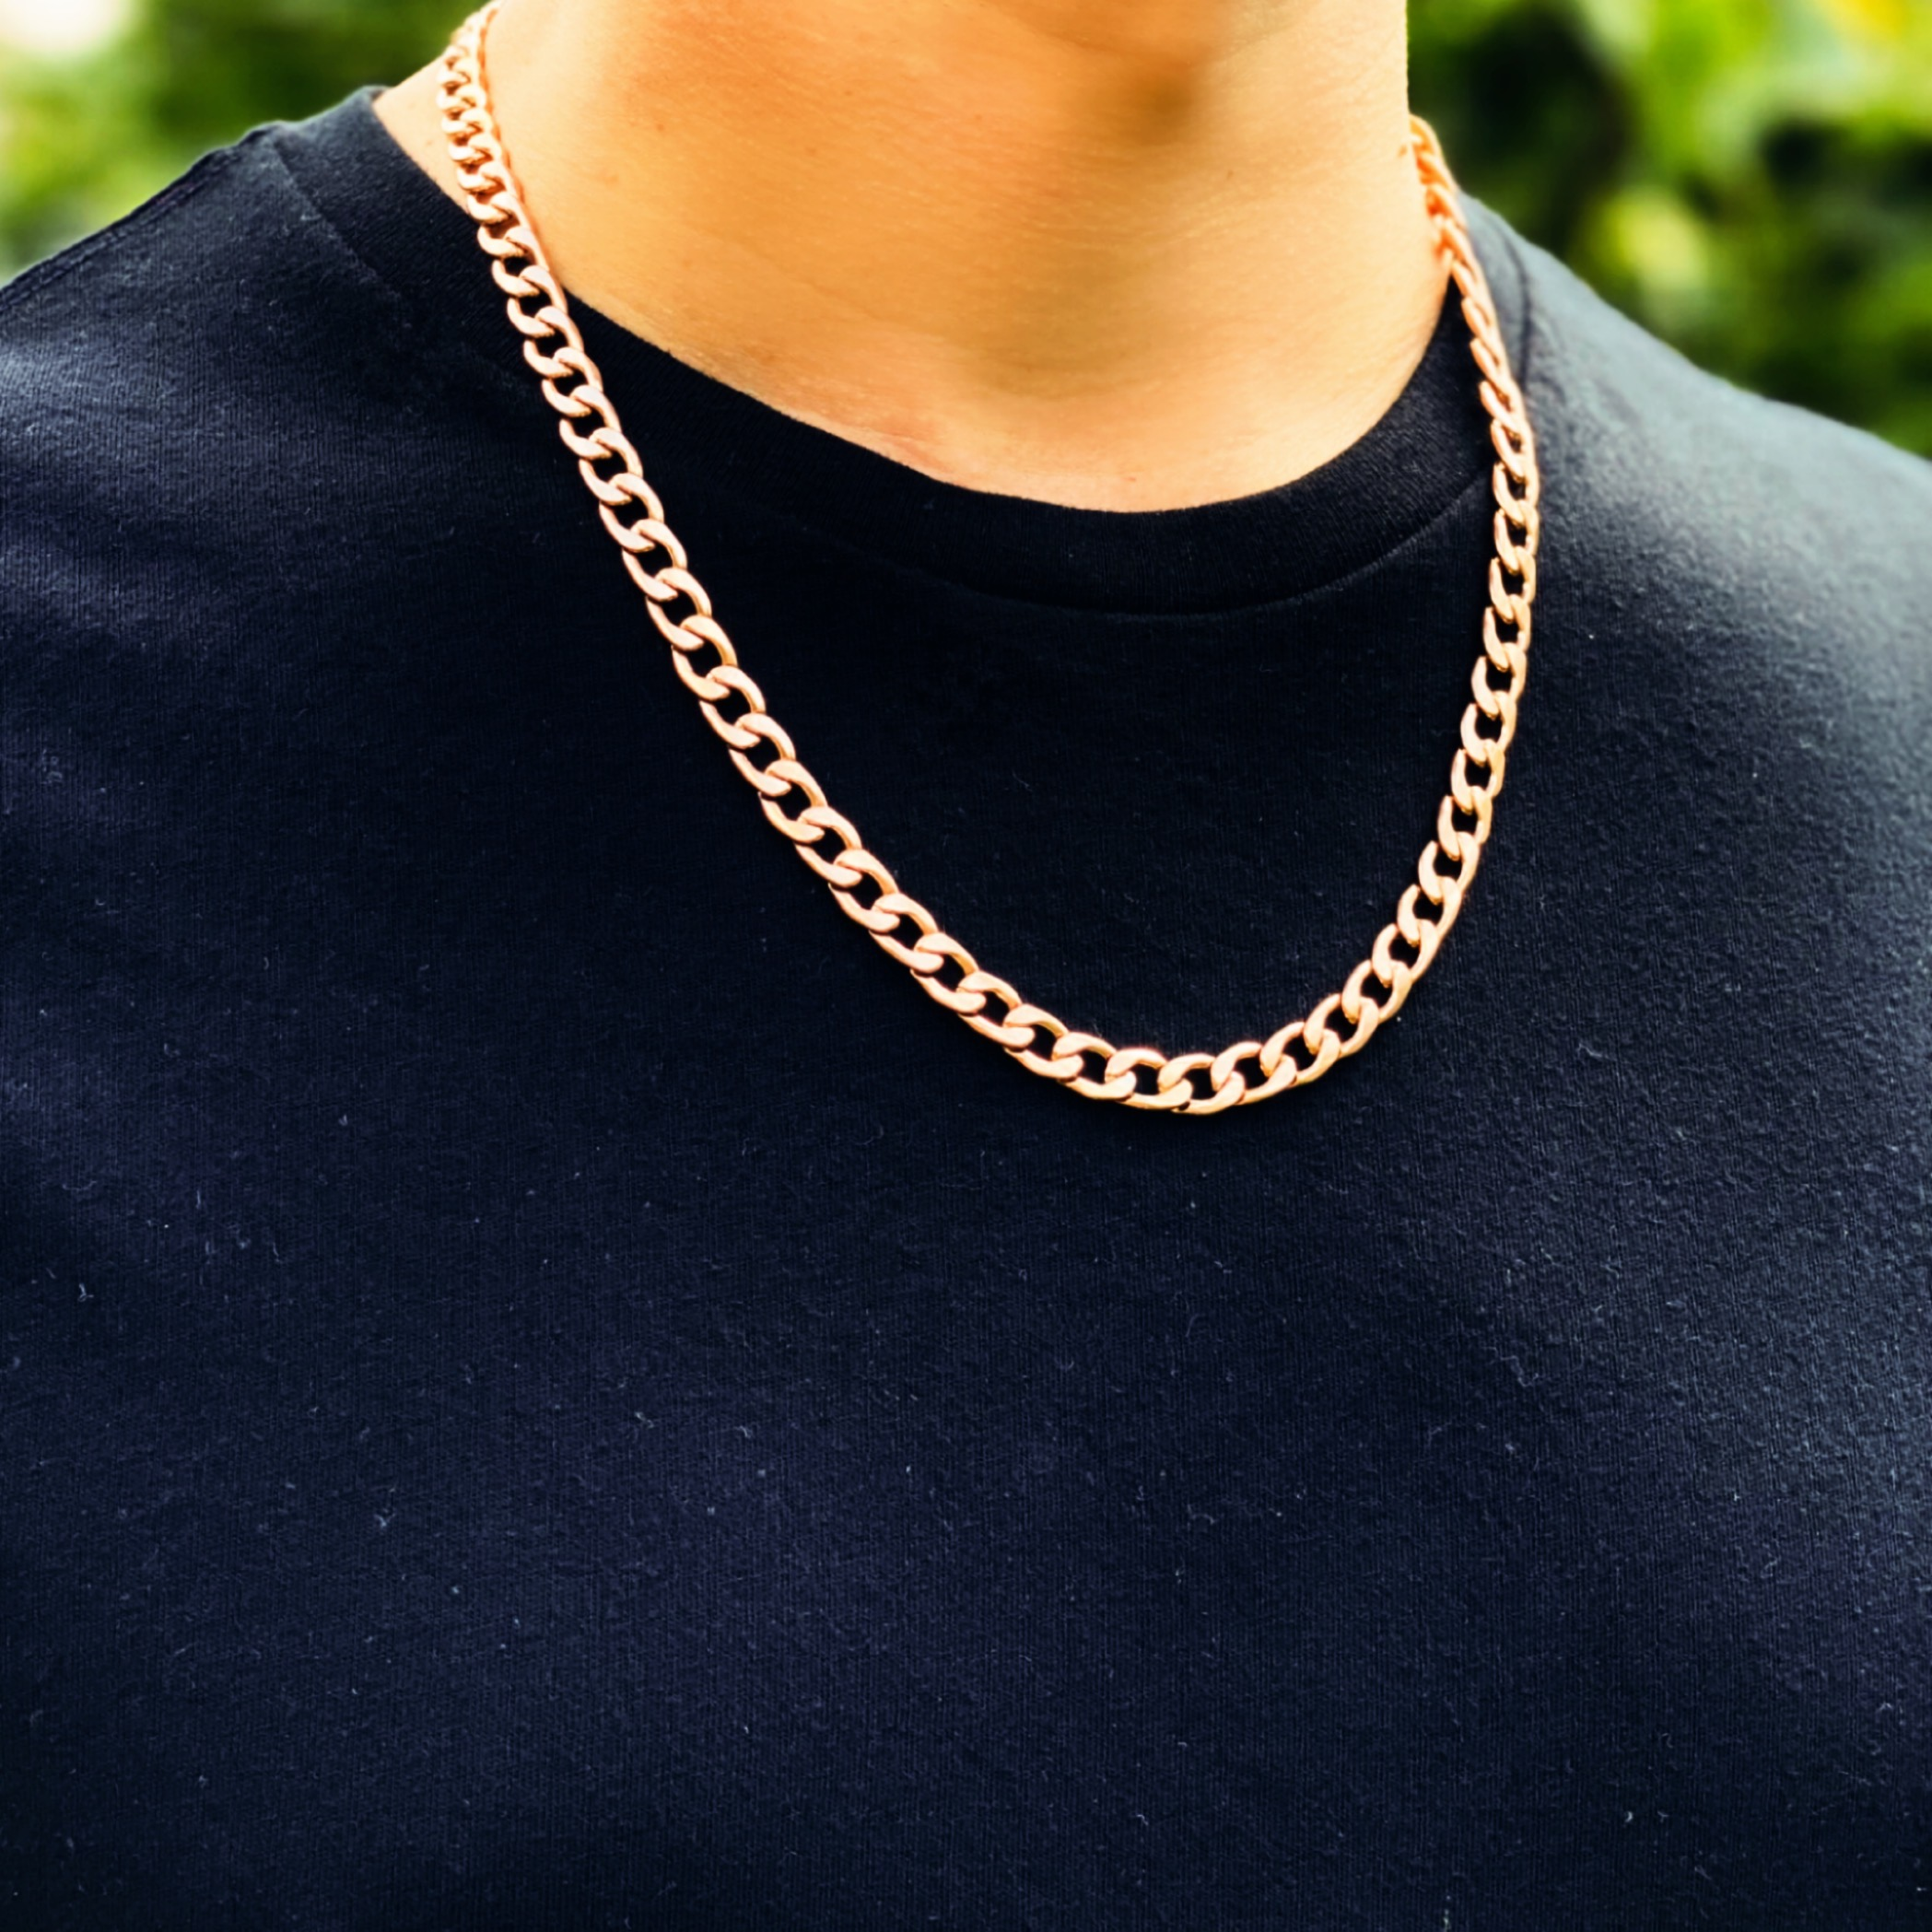 Mens Rose Gold Necklace Chain – Stainless Steel Curb Style, 7mm Width – CubanSlim©